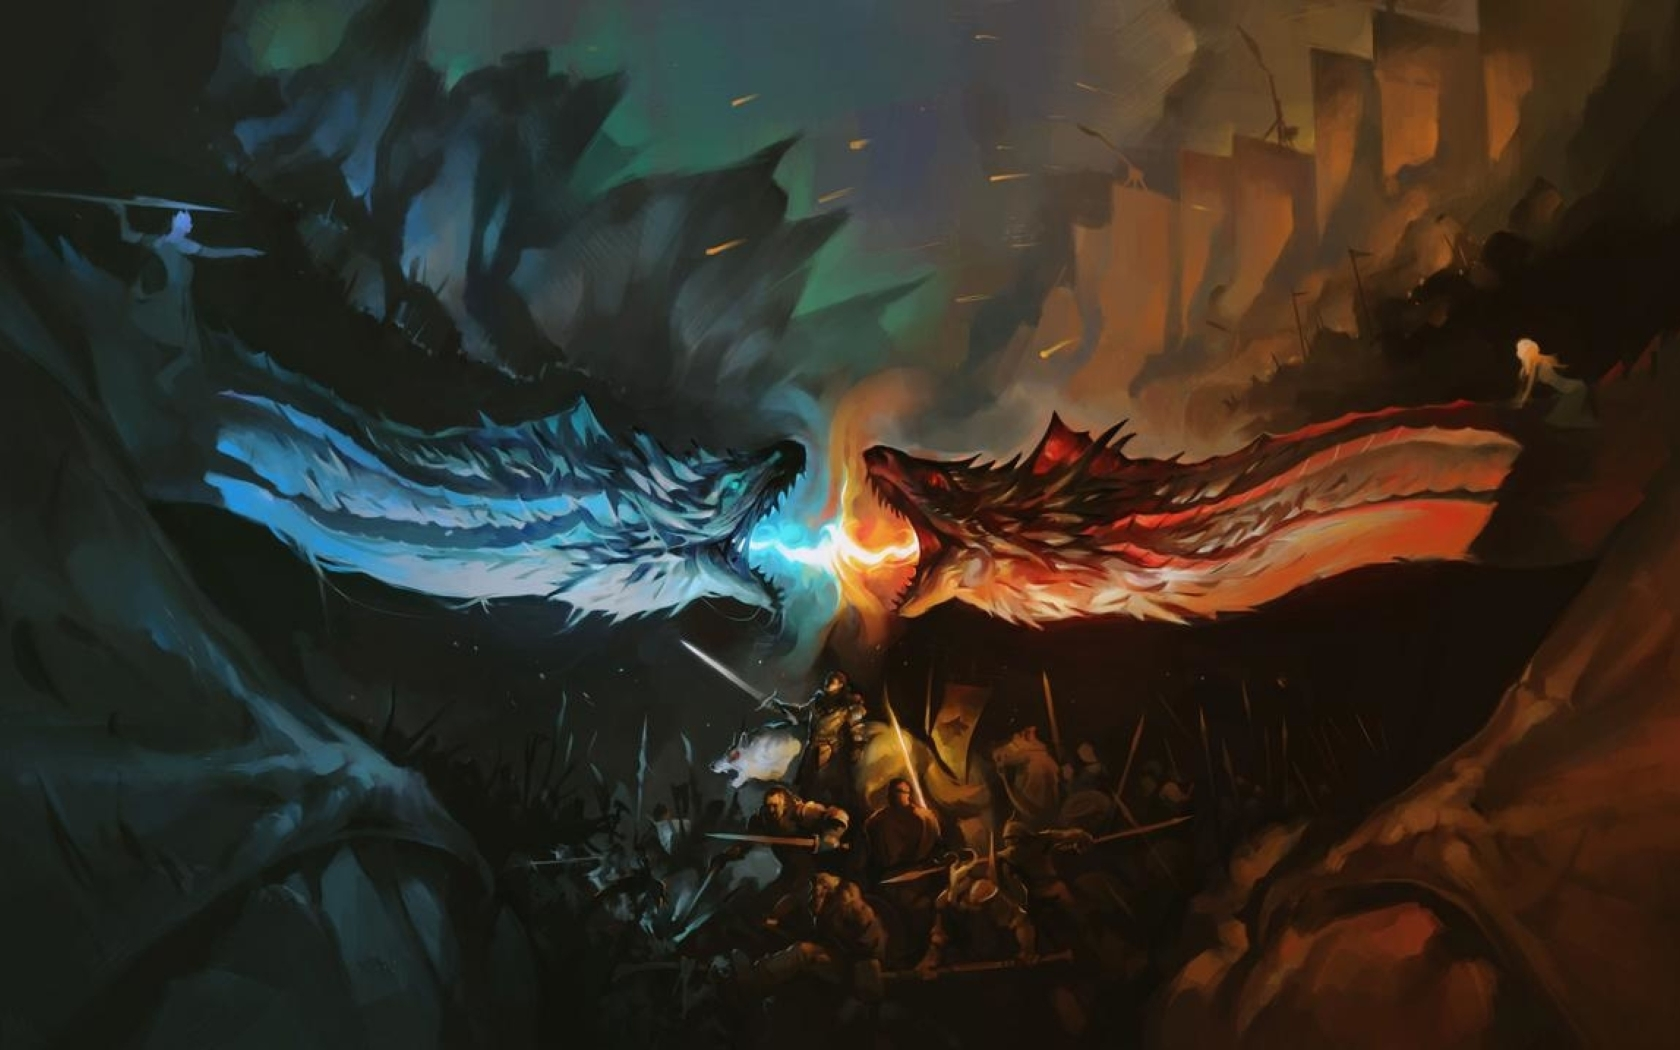 Dragon Battle Fire Vs Ice Game Of Thrones, HD Wallpaper Fire And Ice Dragon Wallpaper